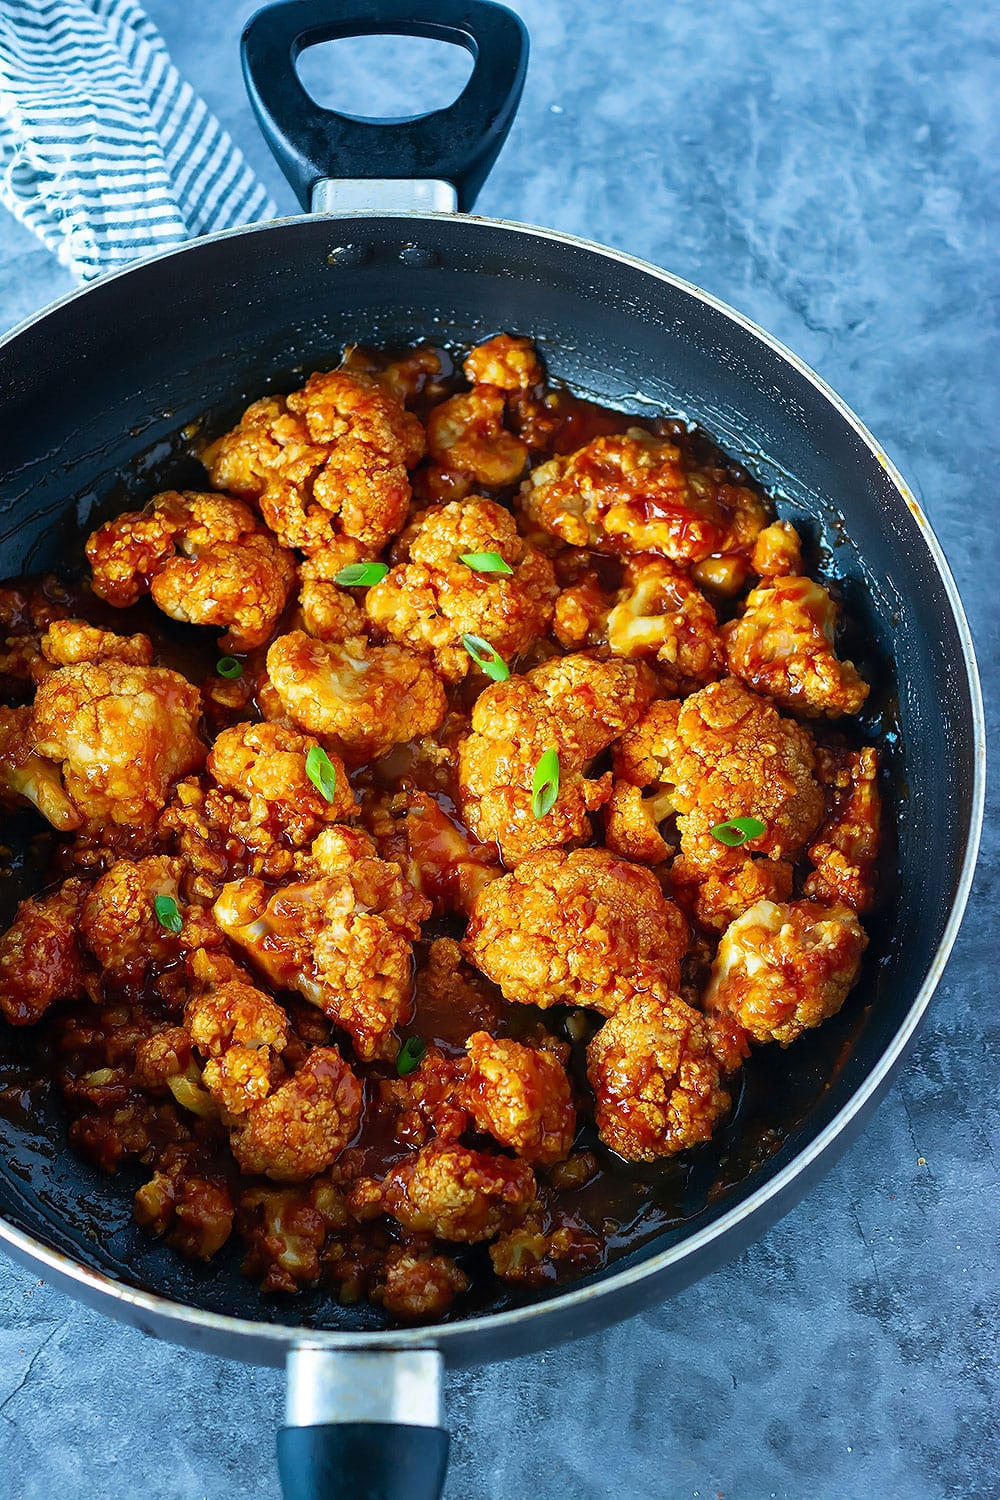 Overlay, general tso cauliflower in a black saucepan on a blue marble background